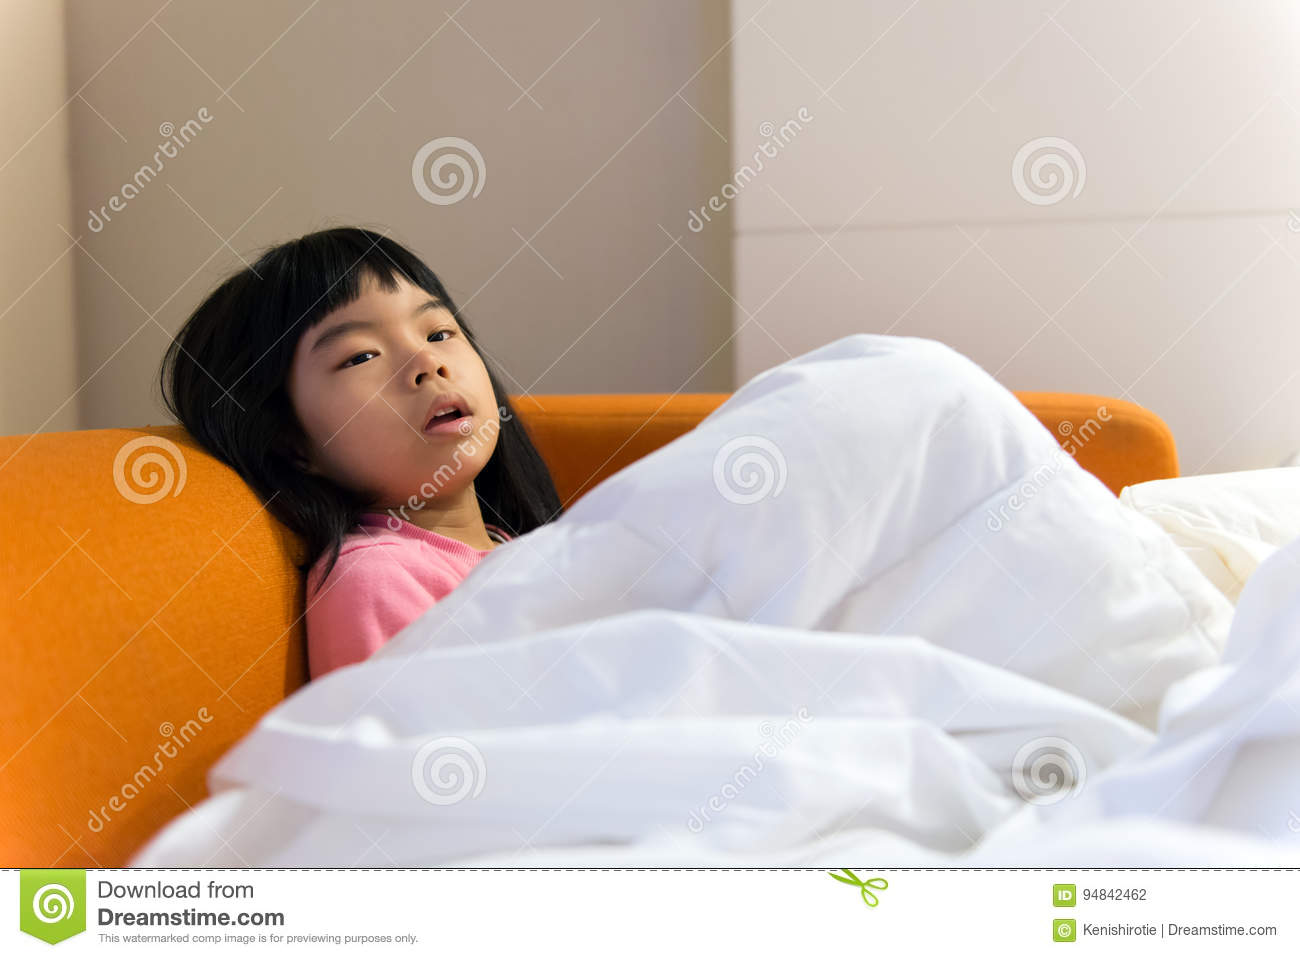 Child not feeling well stock photo image of awake childhood 94842462 download child not feeling well stock photo image of awake childhood 94842462 altavistaventures Gallery